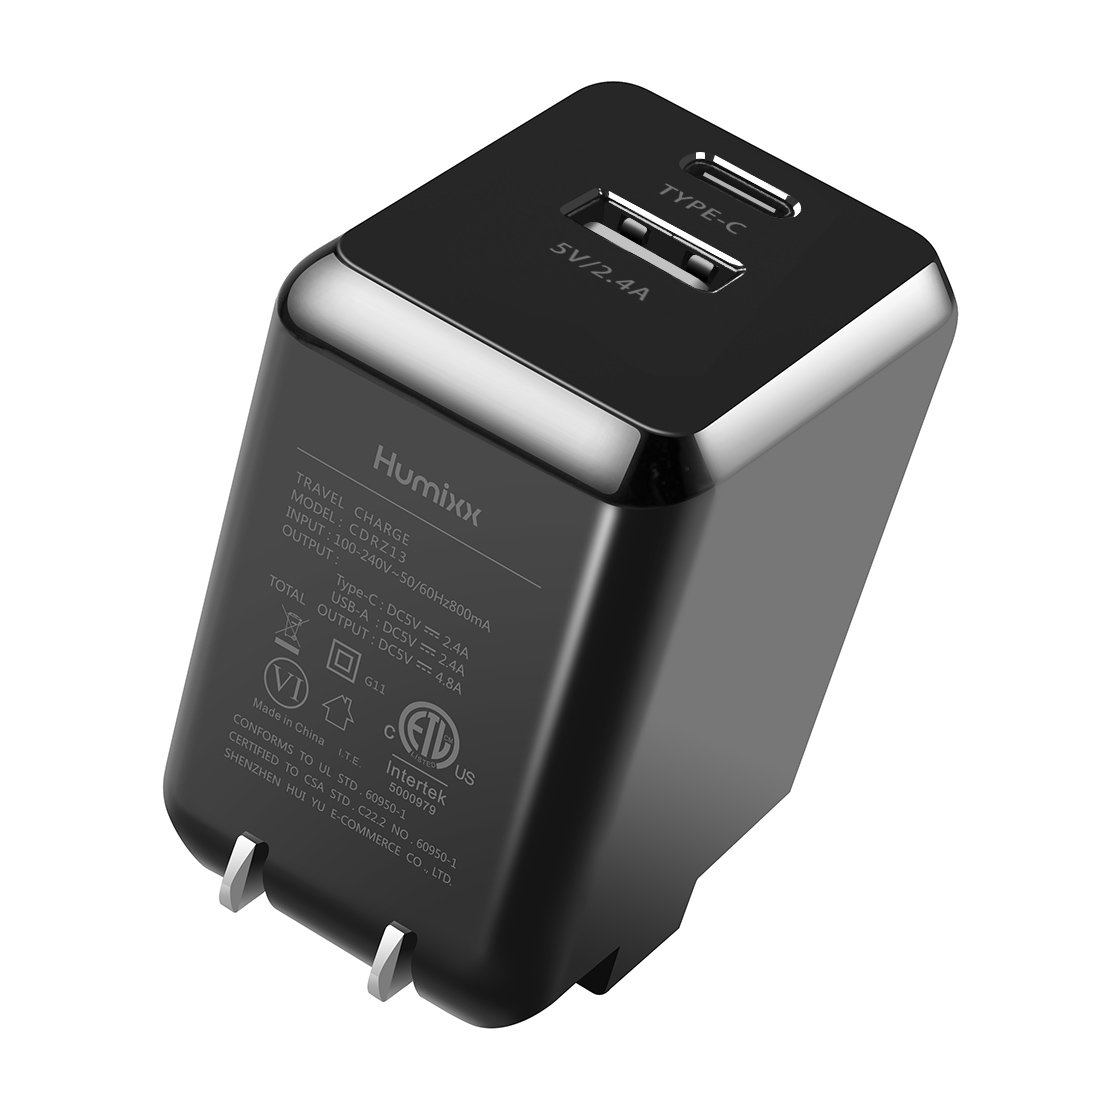 Humixx 24W Dual Port PD+USB Travel Charger Adapter Dual Charging Port 5V/4.8A (Type-C: 5V/2.4A, USB: 5V/2.4A) Portable Fast Charger for iPhone 8/8 Plus, iPhone X, iPad Pro, MacBook etc.